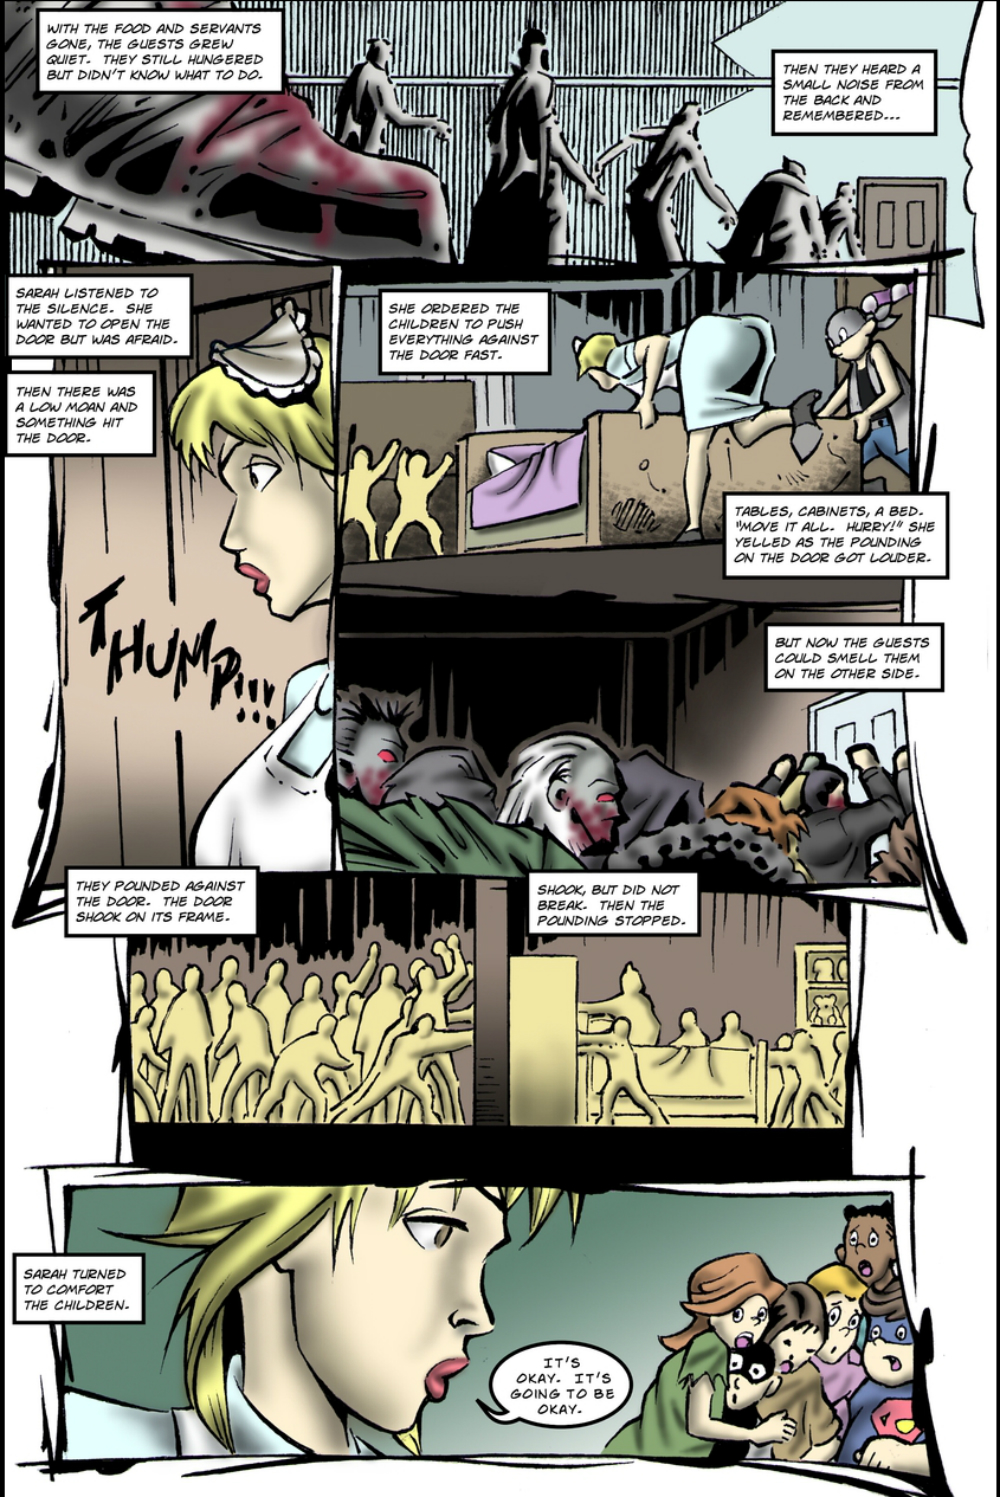 FEAST page 5 - story 23